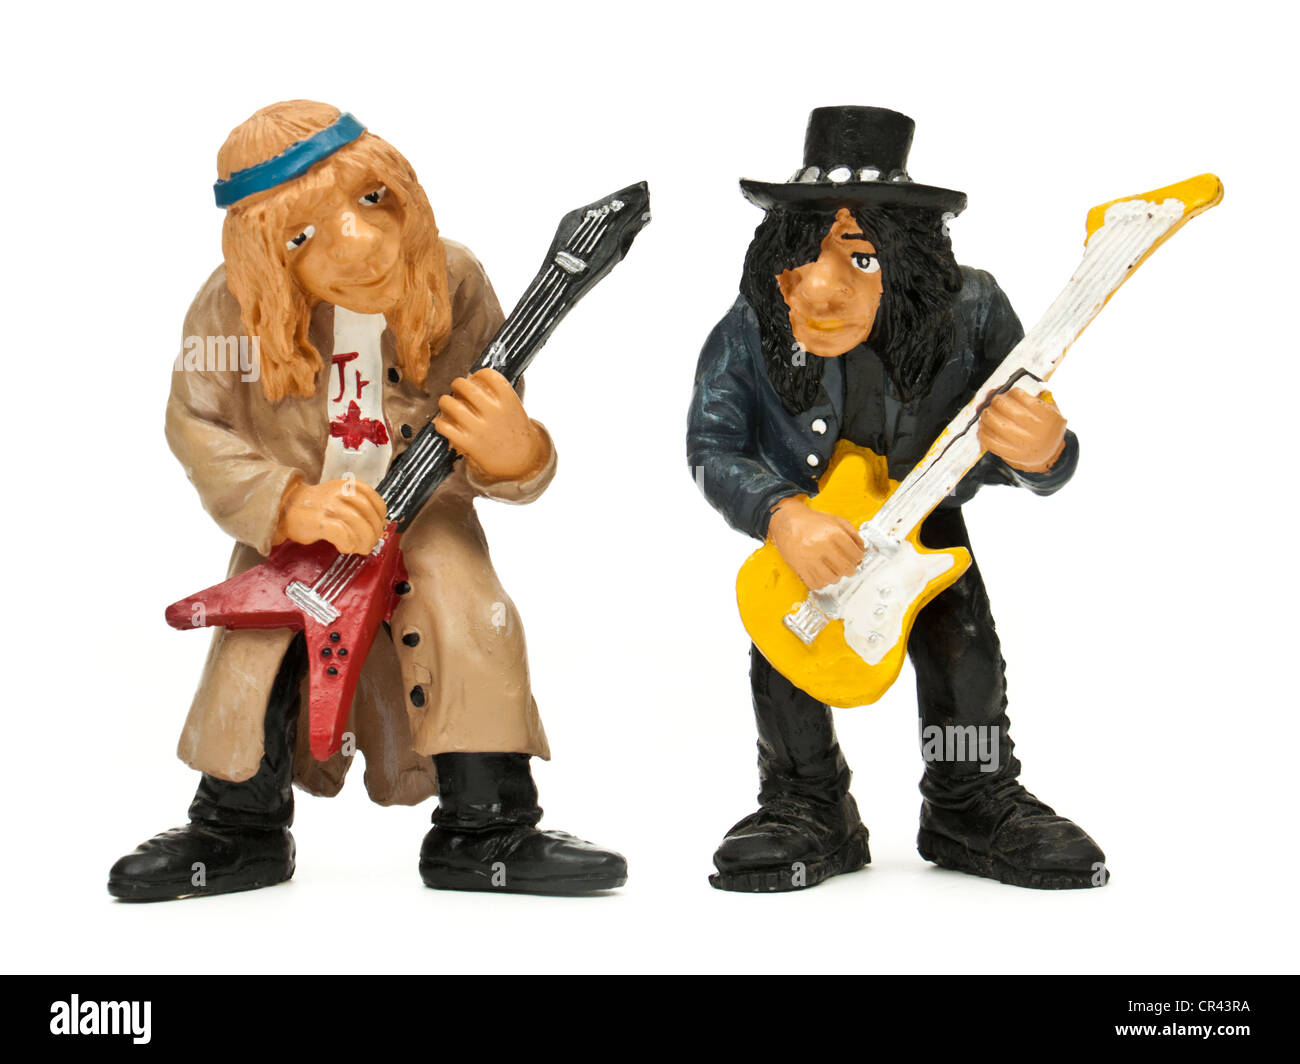 Miniature rock guitarists - Stock Image